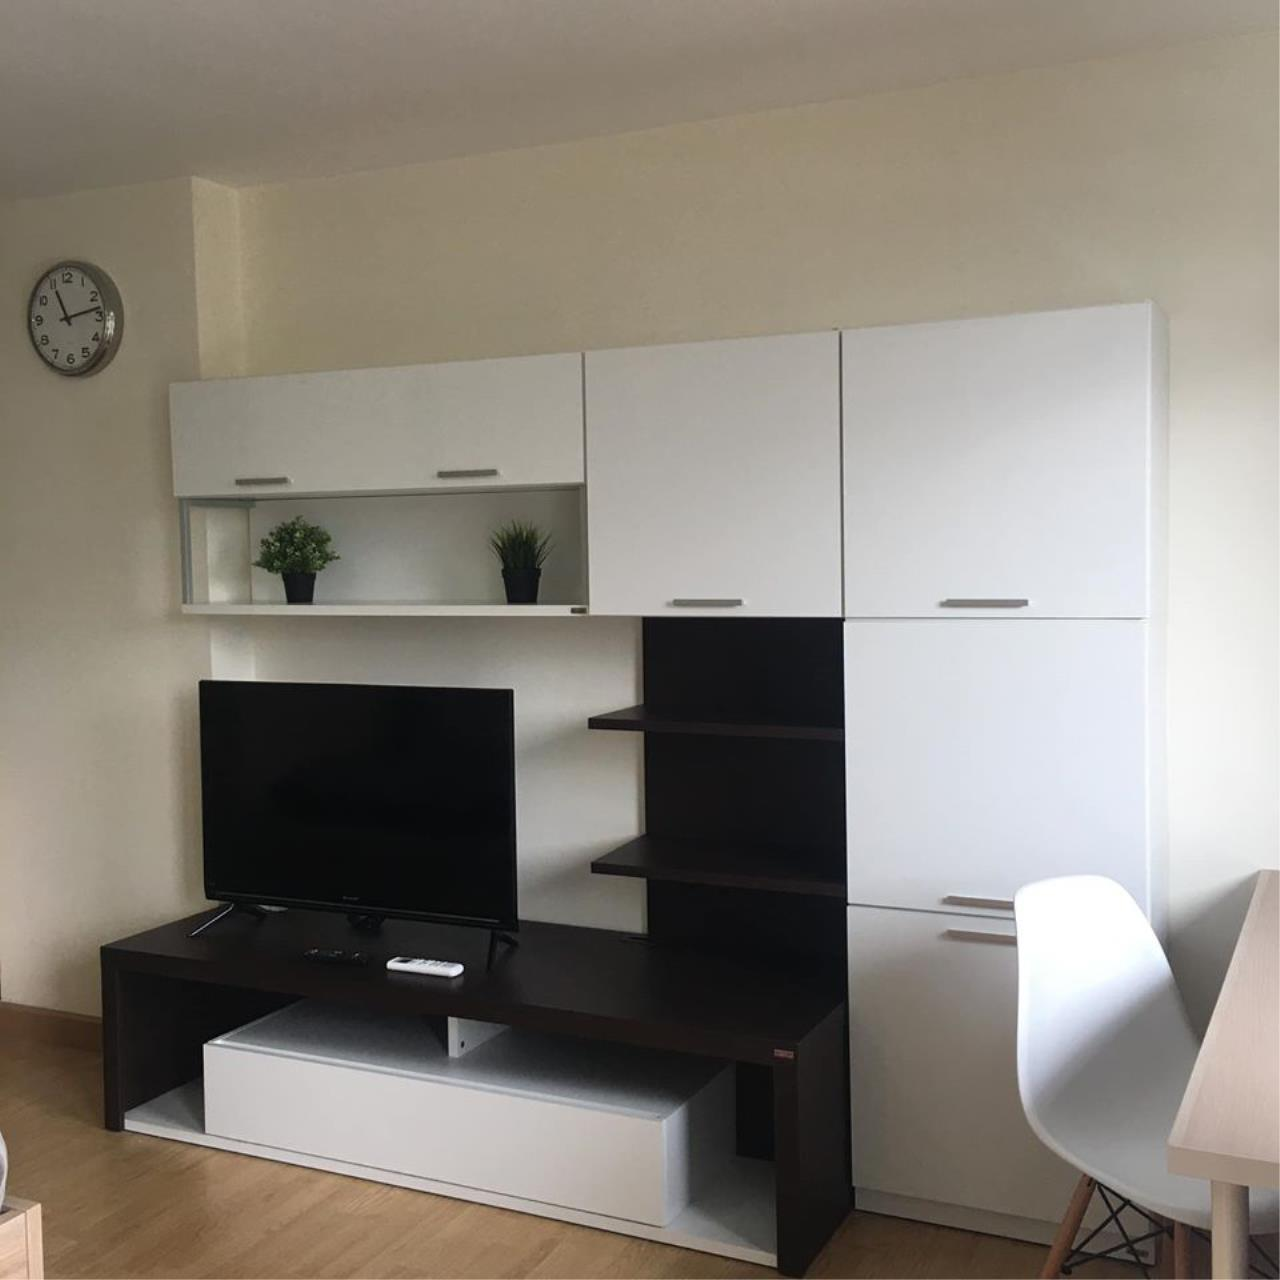 Agent Thawanrat Agency's Condo for rental THE LINK ADVANCE SUKHUMVIT 50 Near BTS. On Nut 1 bedroom,1 bathroom. size 31.5 sqm.Floor 2 nd. fully furnished Ready to move in 5